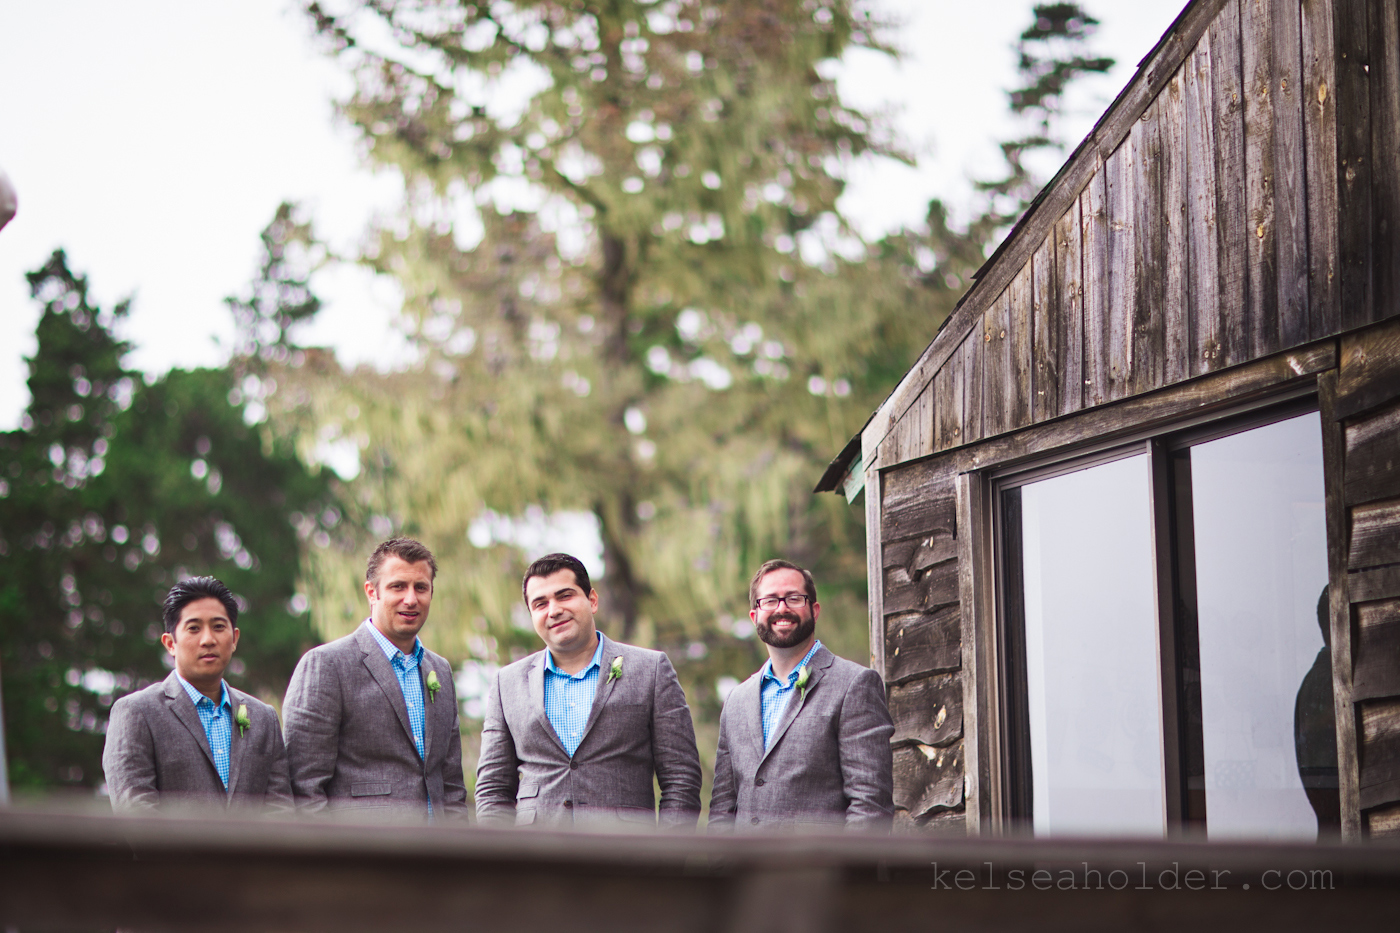 kelsea_holder_eco_outdoor_california_wedding022